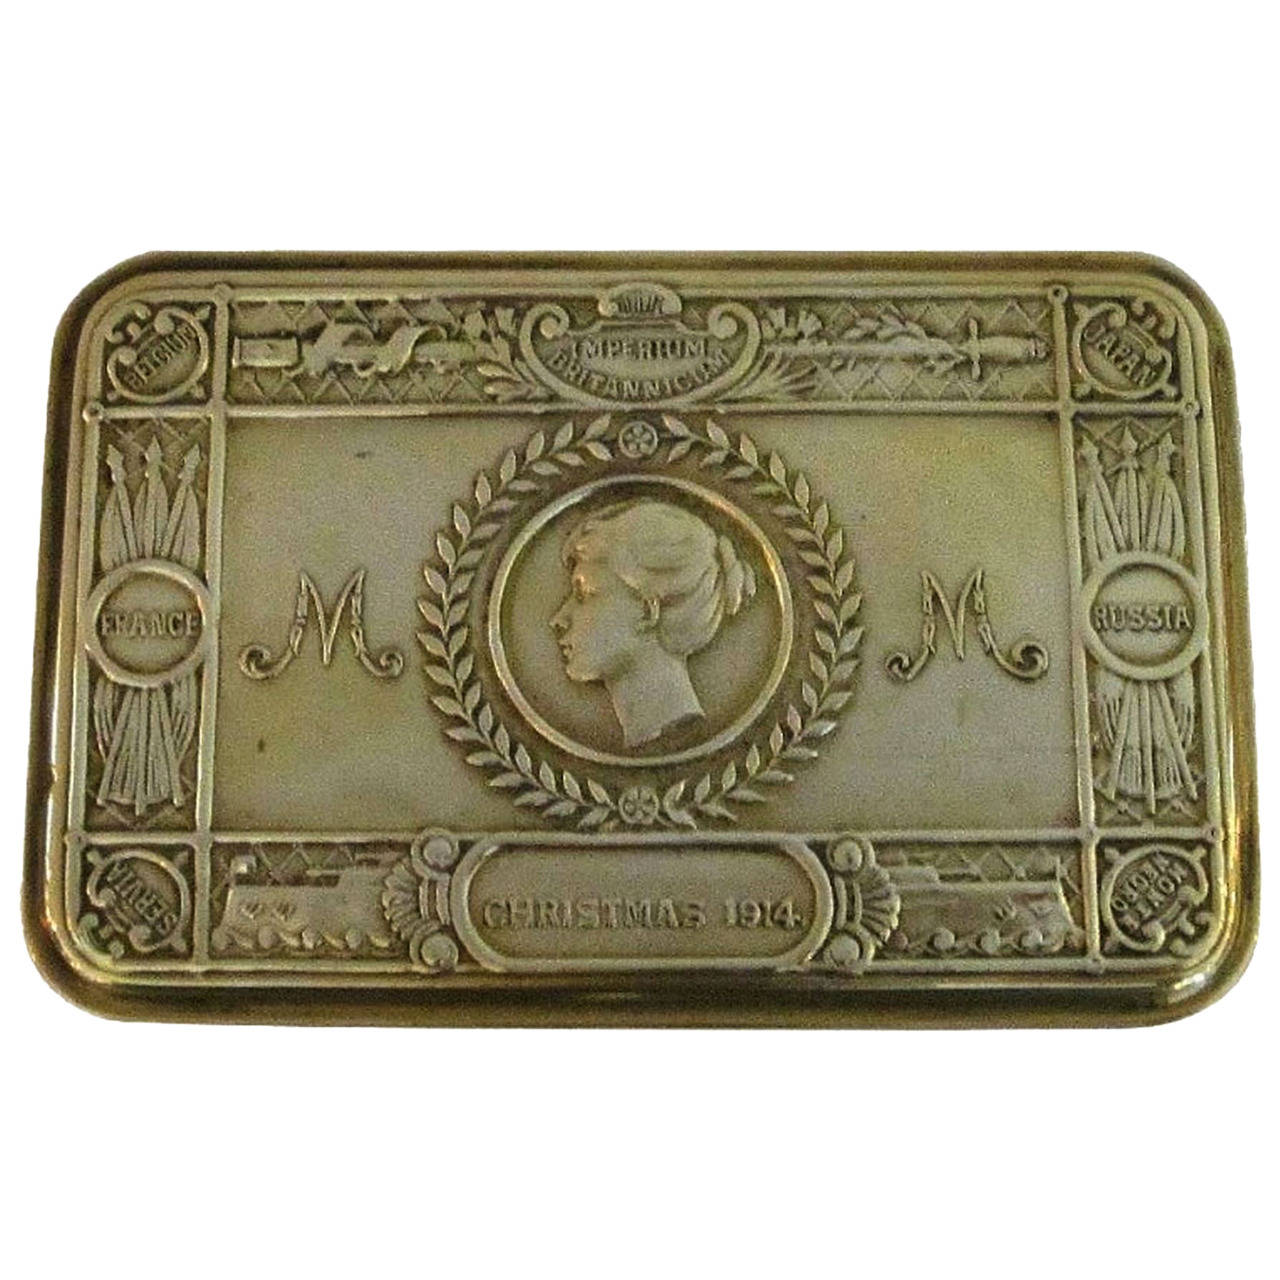 Princess Mary Box, WWI Era, Christmas, 1914 For Sale